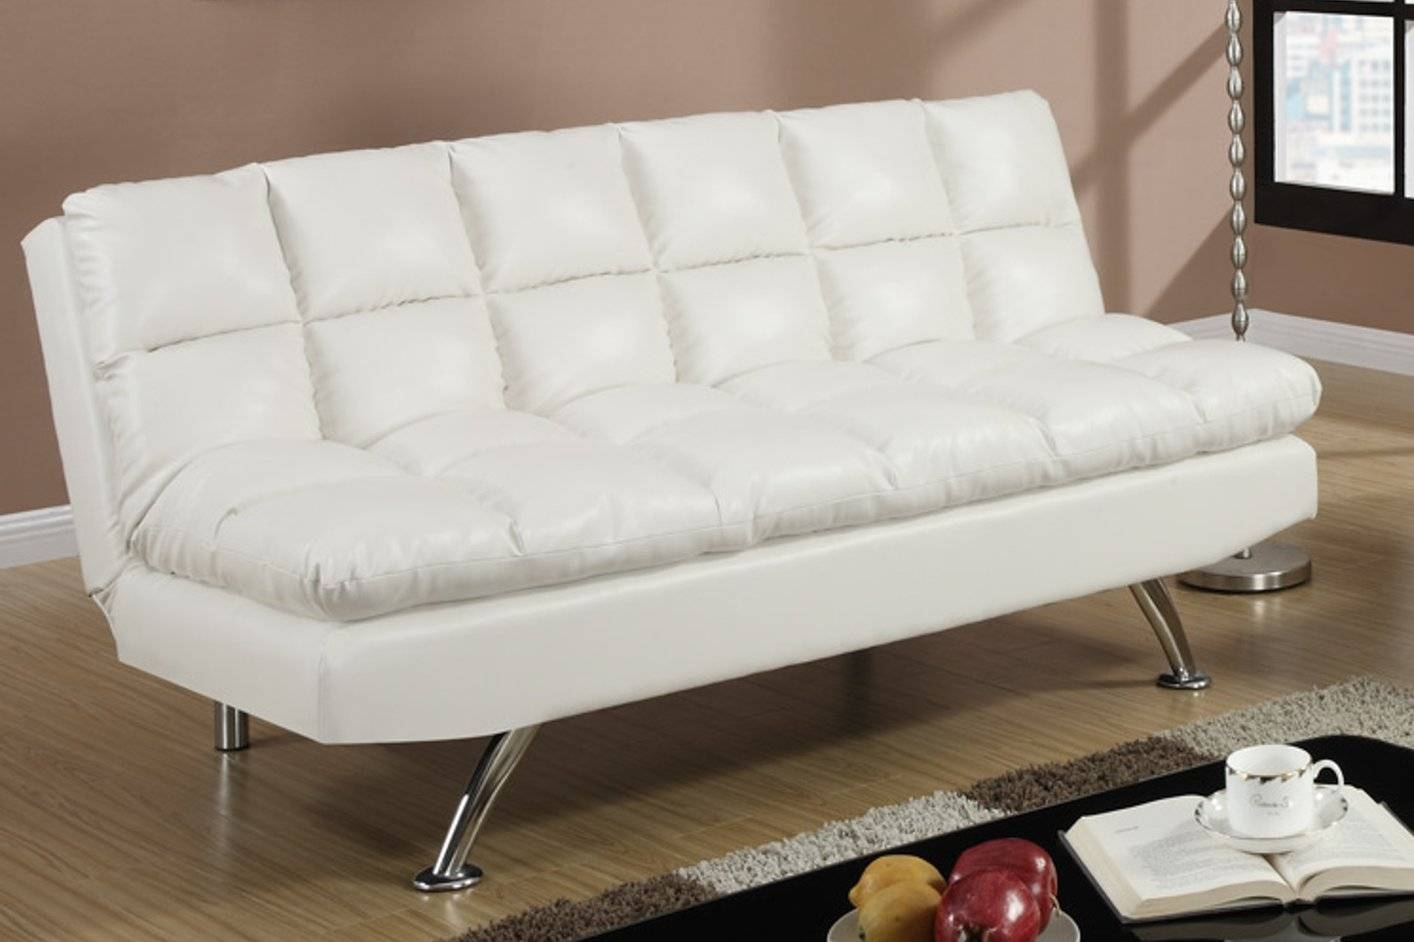 White Leather Twin Size Sofa Bed - Steal-A-Sofa Furniture Outlet for White Leather Sofas (Image 30 of 30)